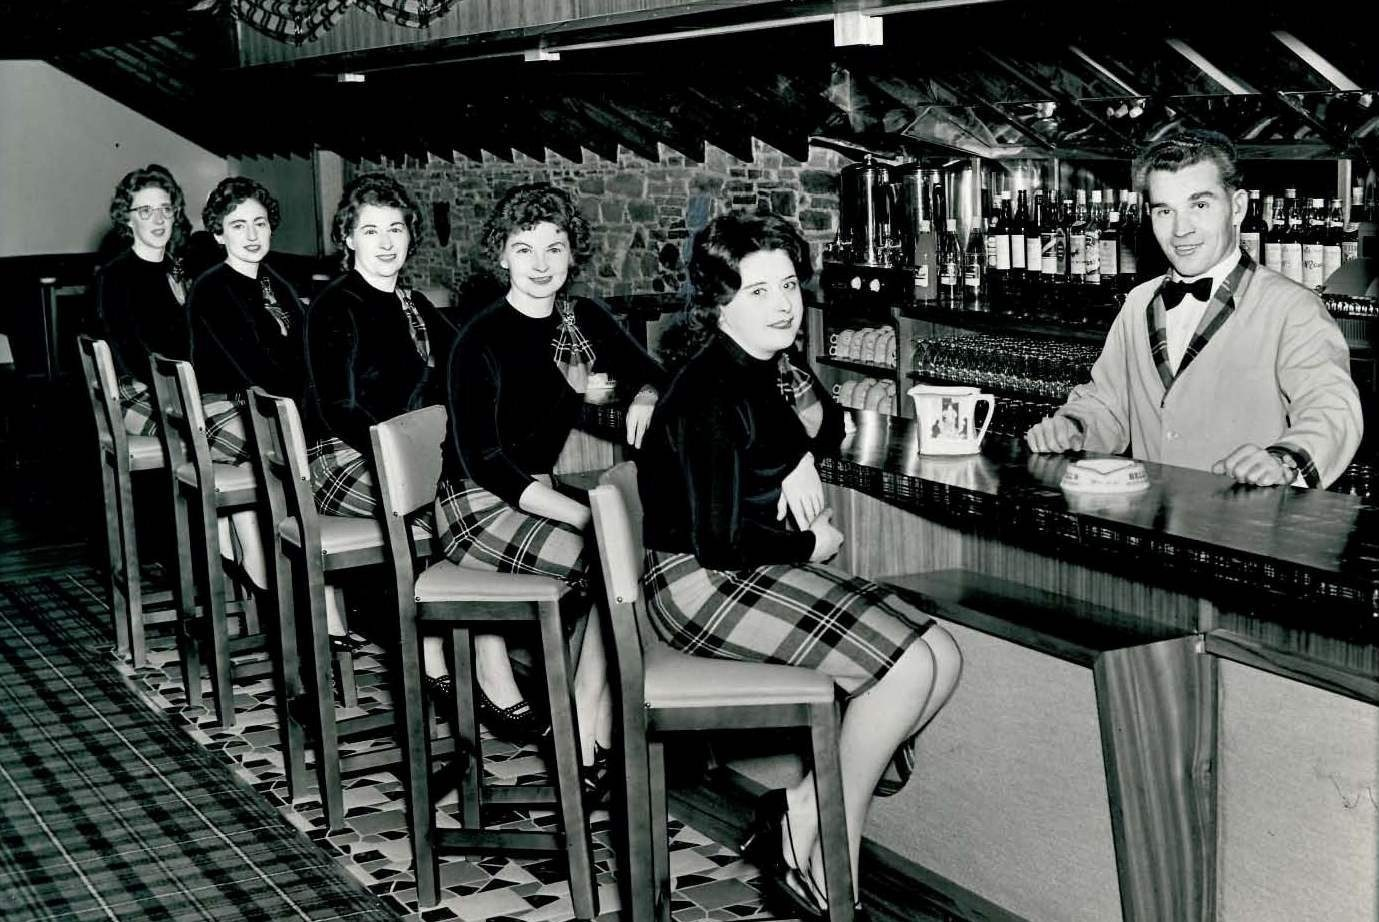 Waiting staff in the Royal's lounge during the hotel's previous heyday, dated October 1962.